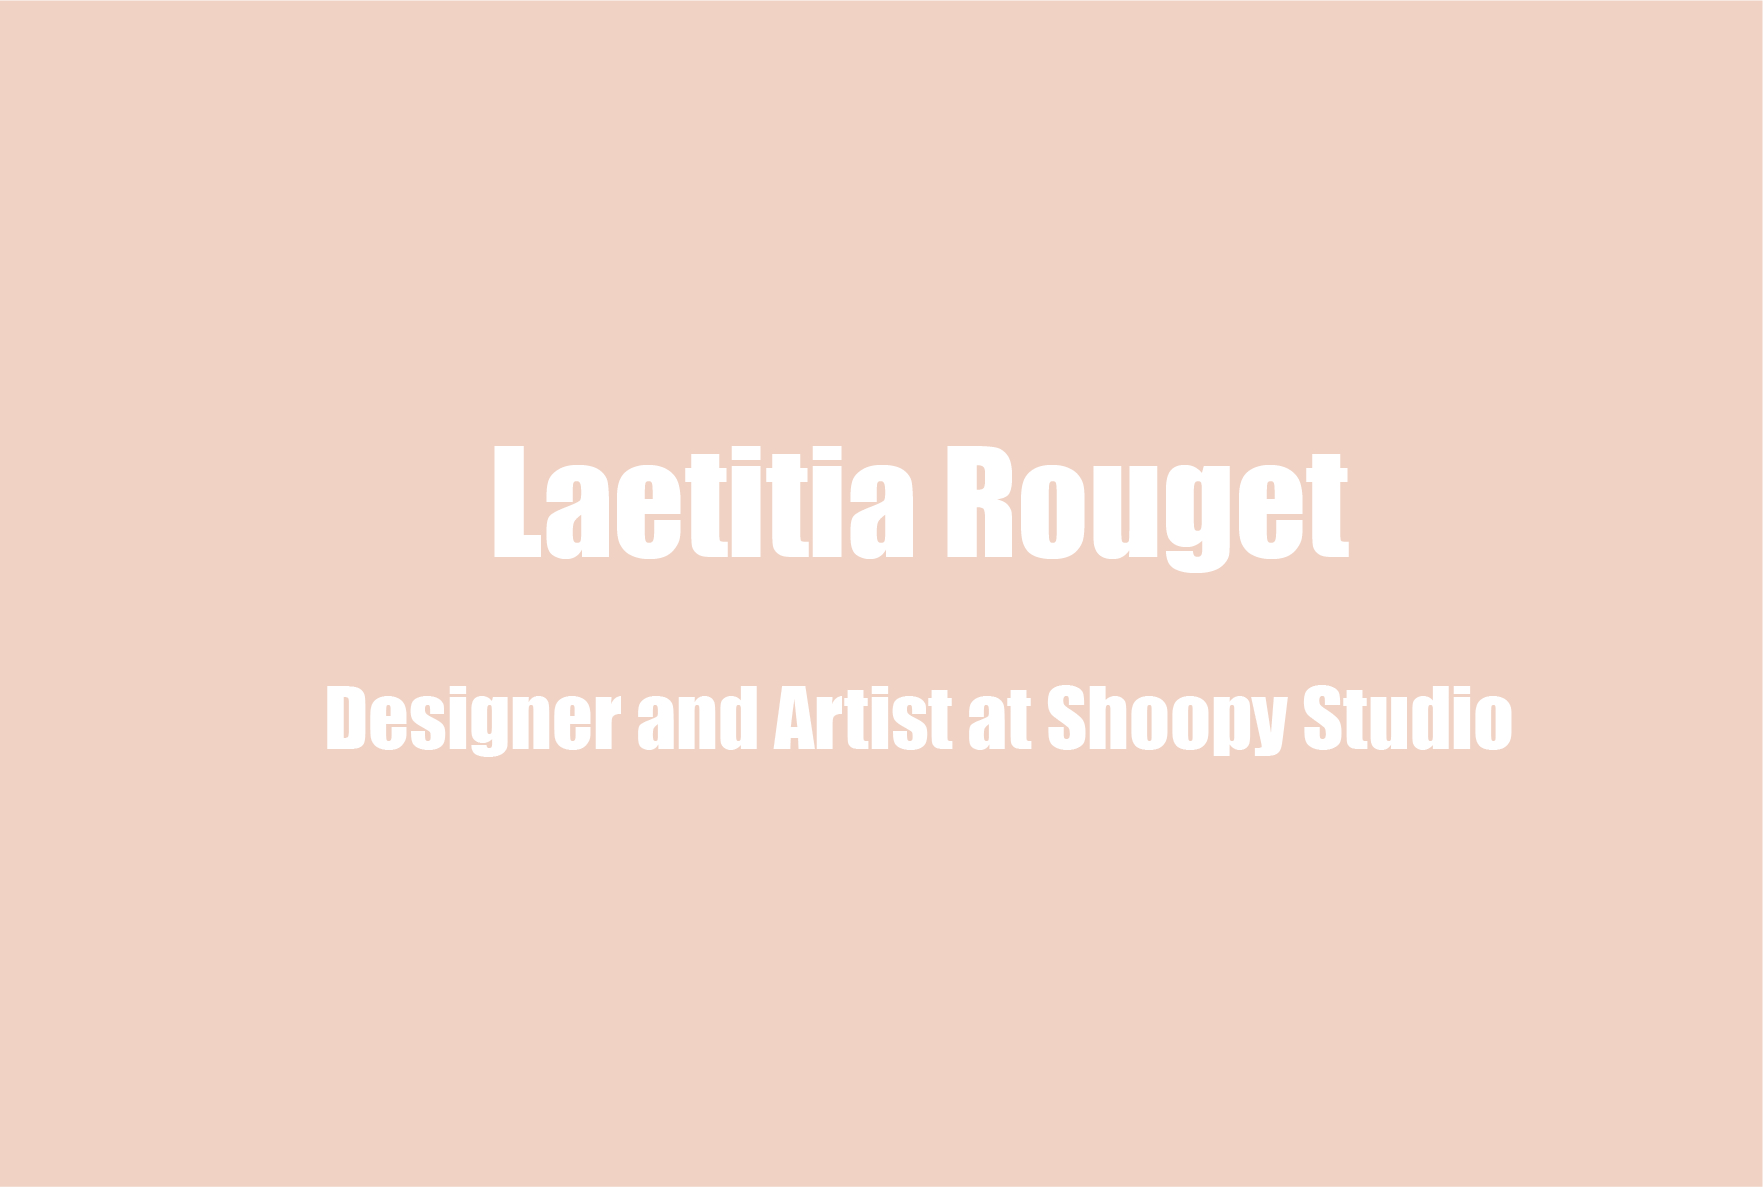 Laetitia Rouget on Upcycling Material for Art, Making a Career Shift, and Anxiety